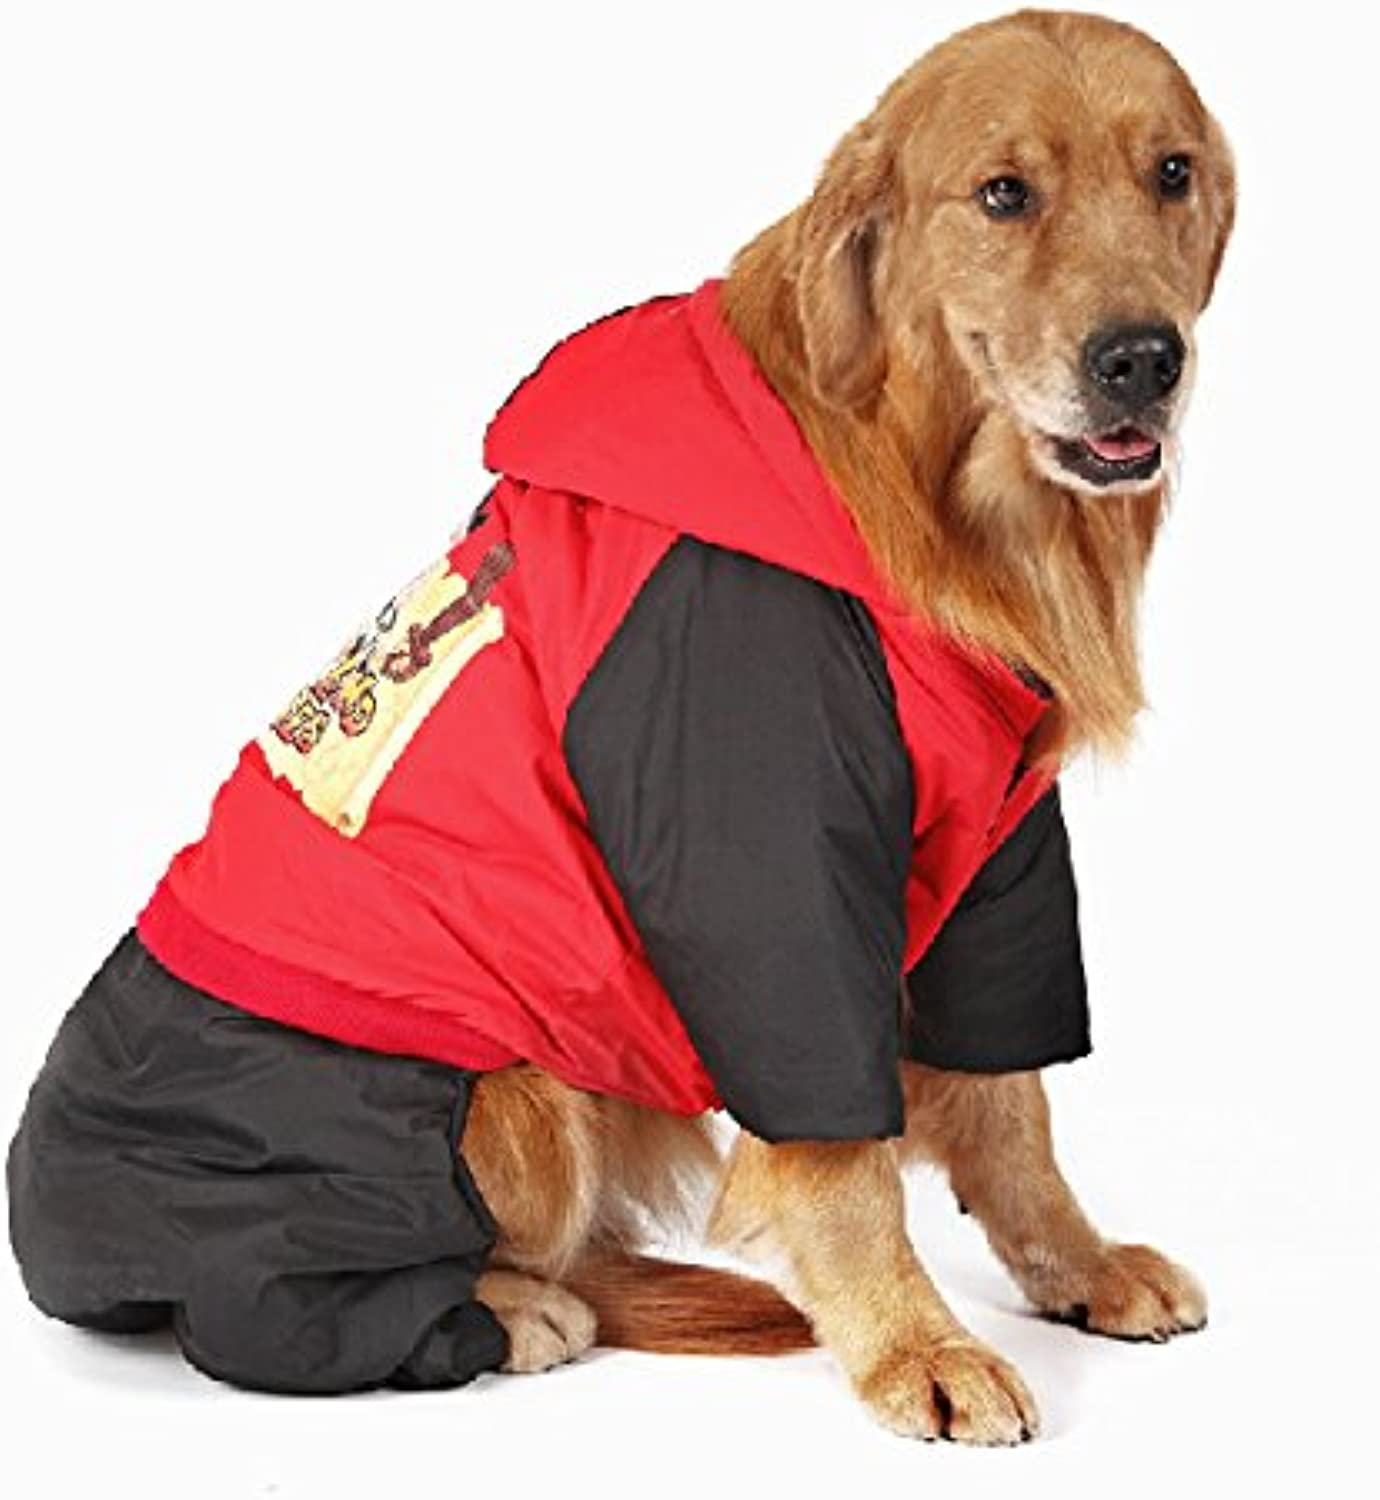 Pet dogs warm Costume Autumn and winter Medium Large Hoodies cotton coats golden Retriever Samoyed dog Clothes Red XL